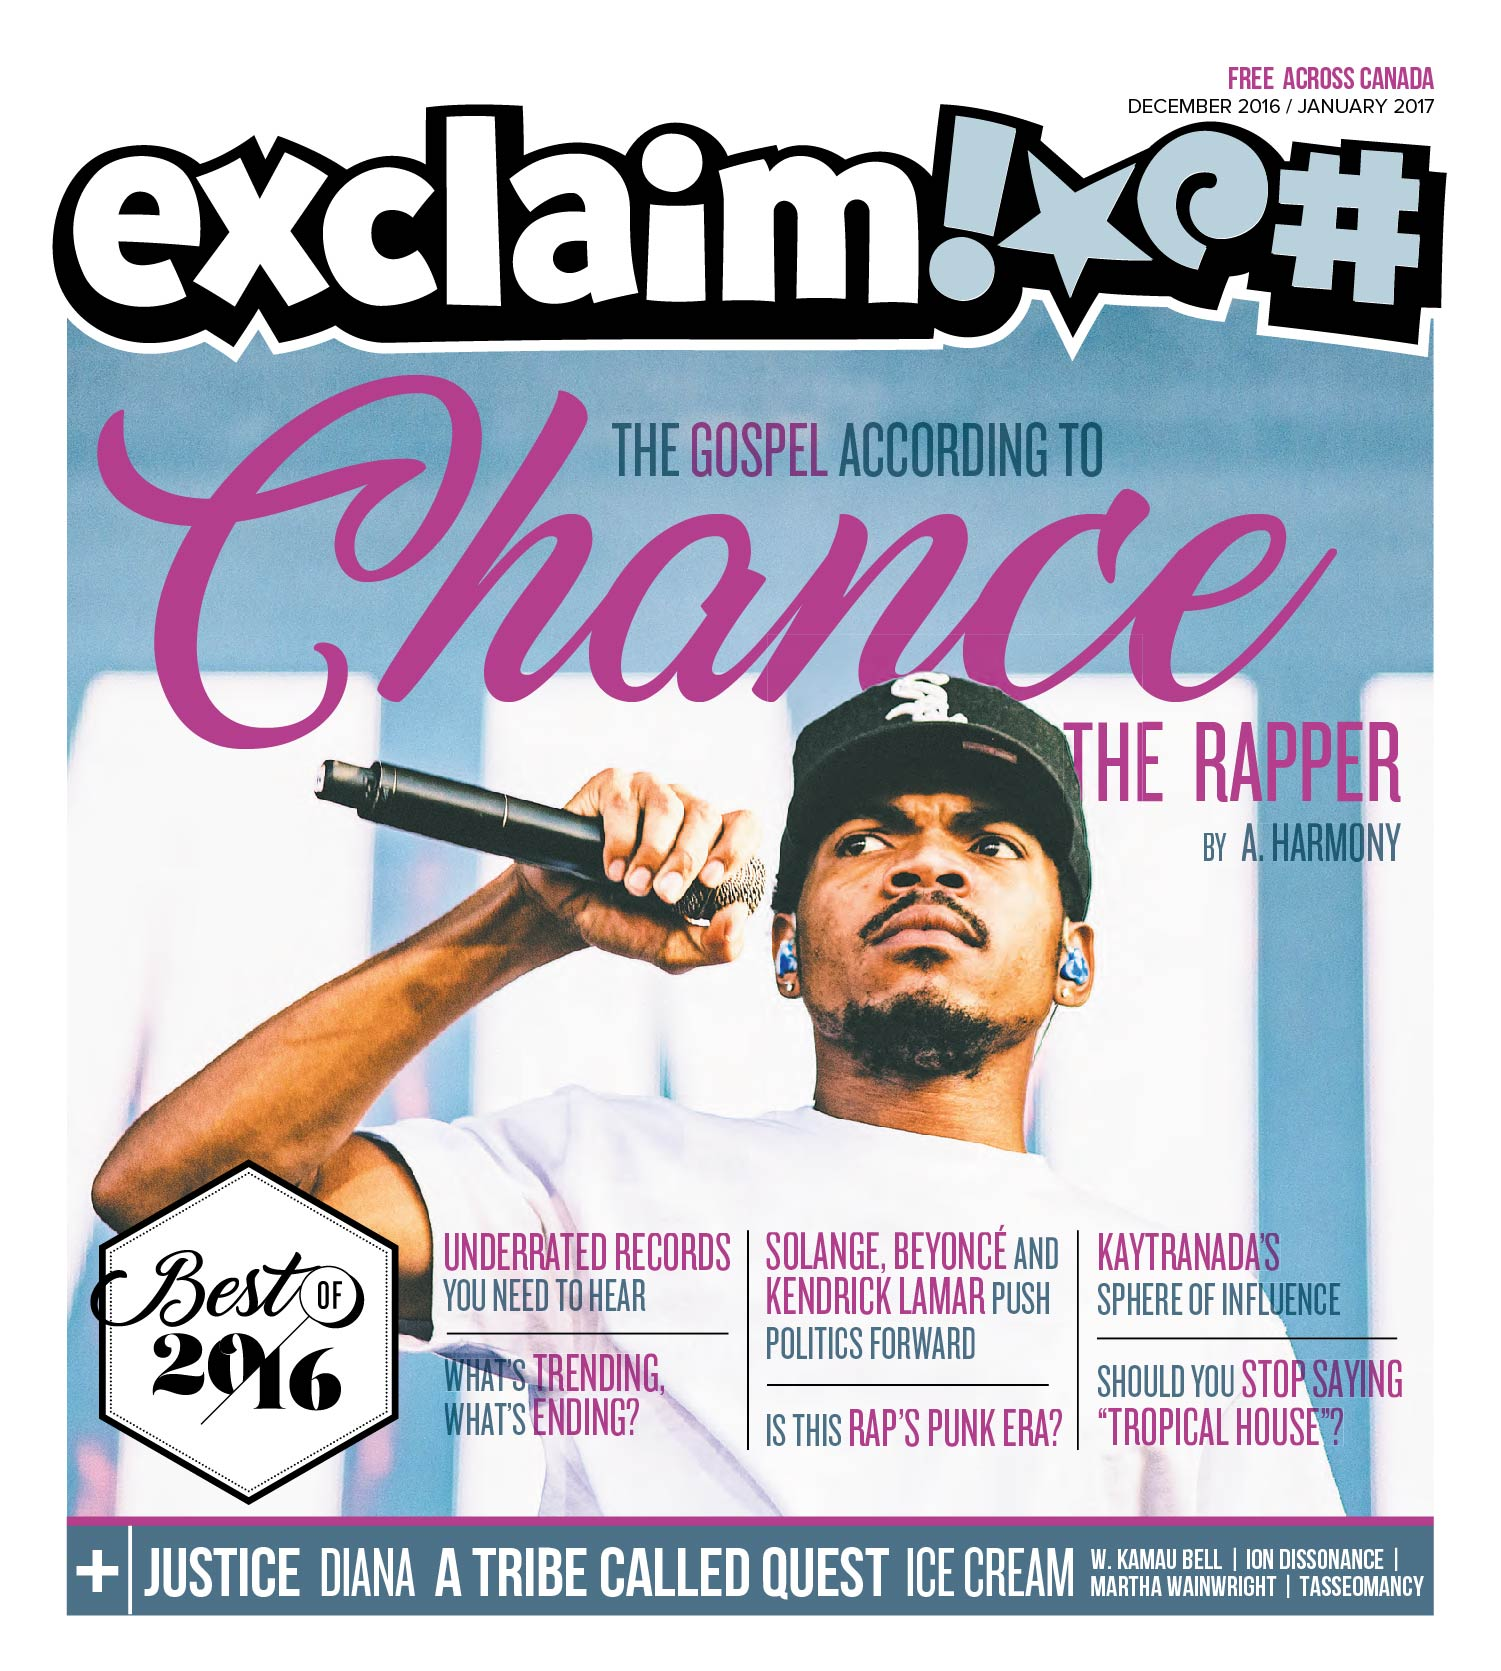 Chance The Rapper - Photo Annual Cover - Exclaim Magazine